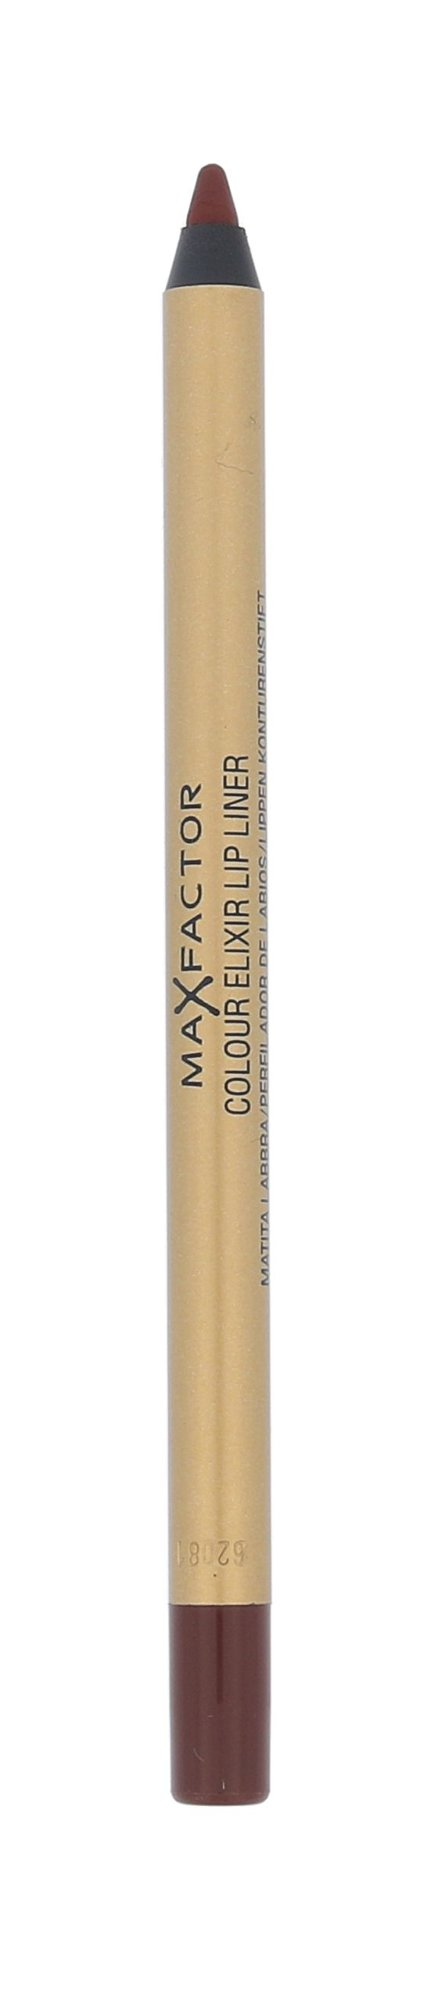 Max Factor Colour Elixir Cosmetic 2ml 16 Brown n Bold